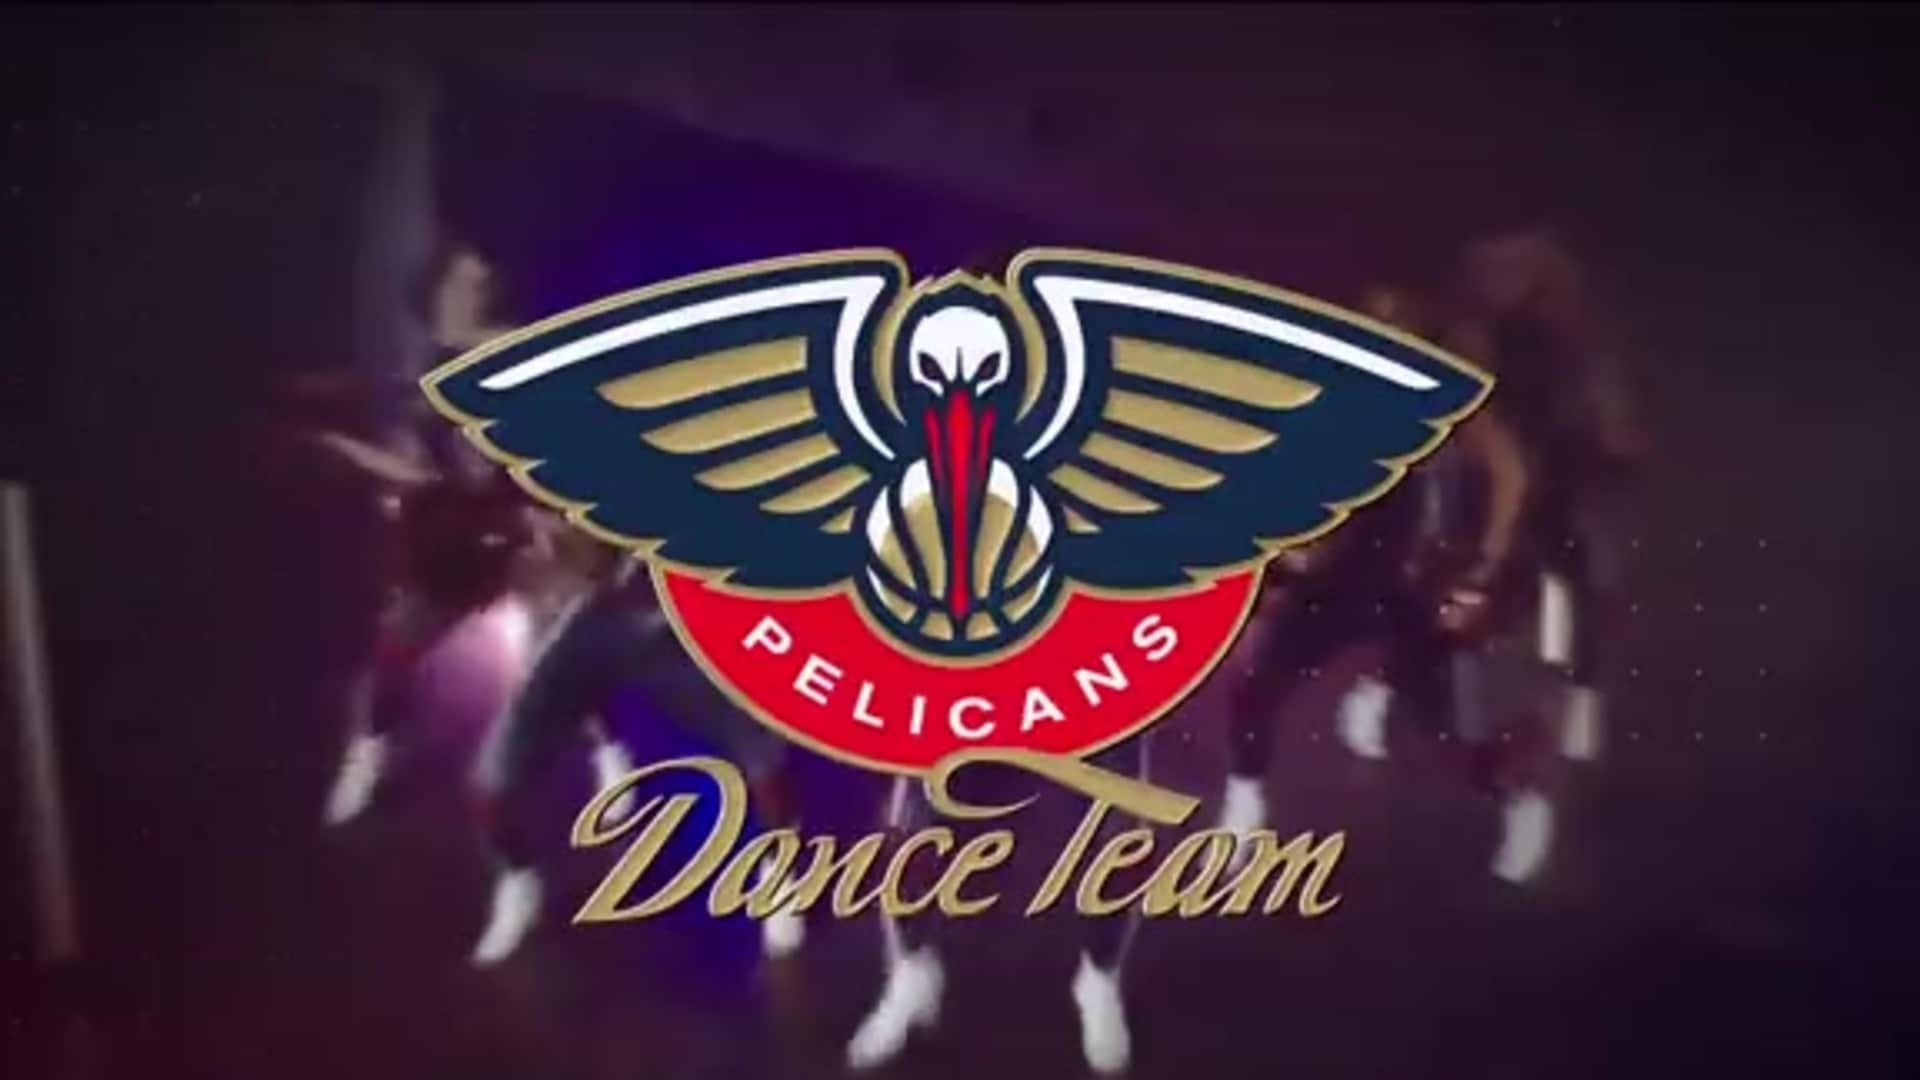 Entertainment: Pelicans Dance Team 3rd quarter performance - December 28 vs. Indiana Pacers